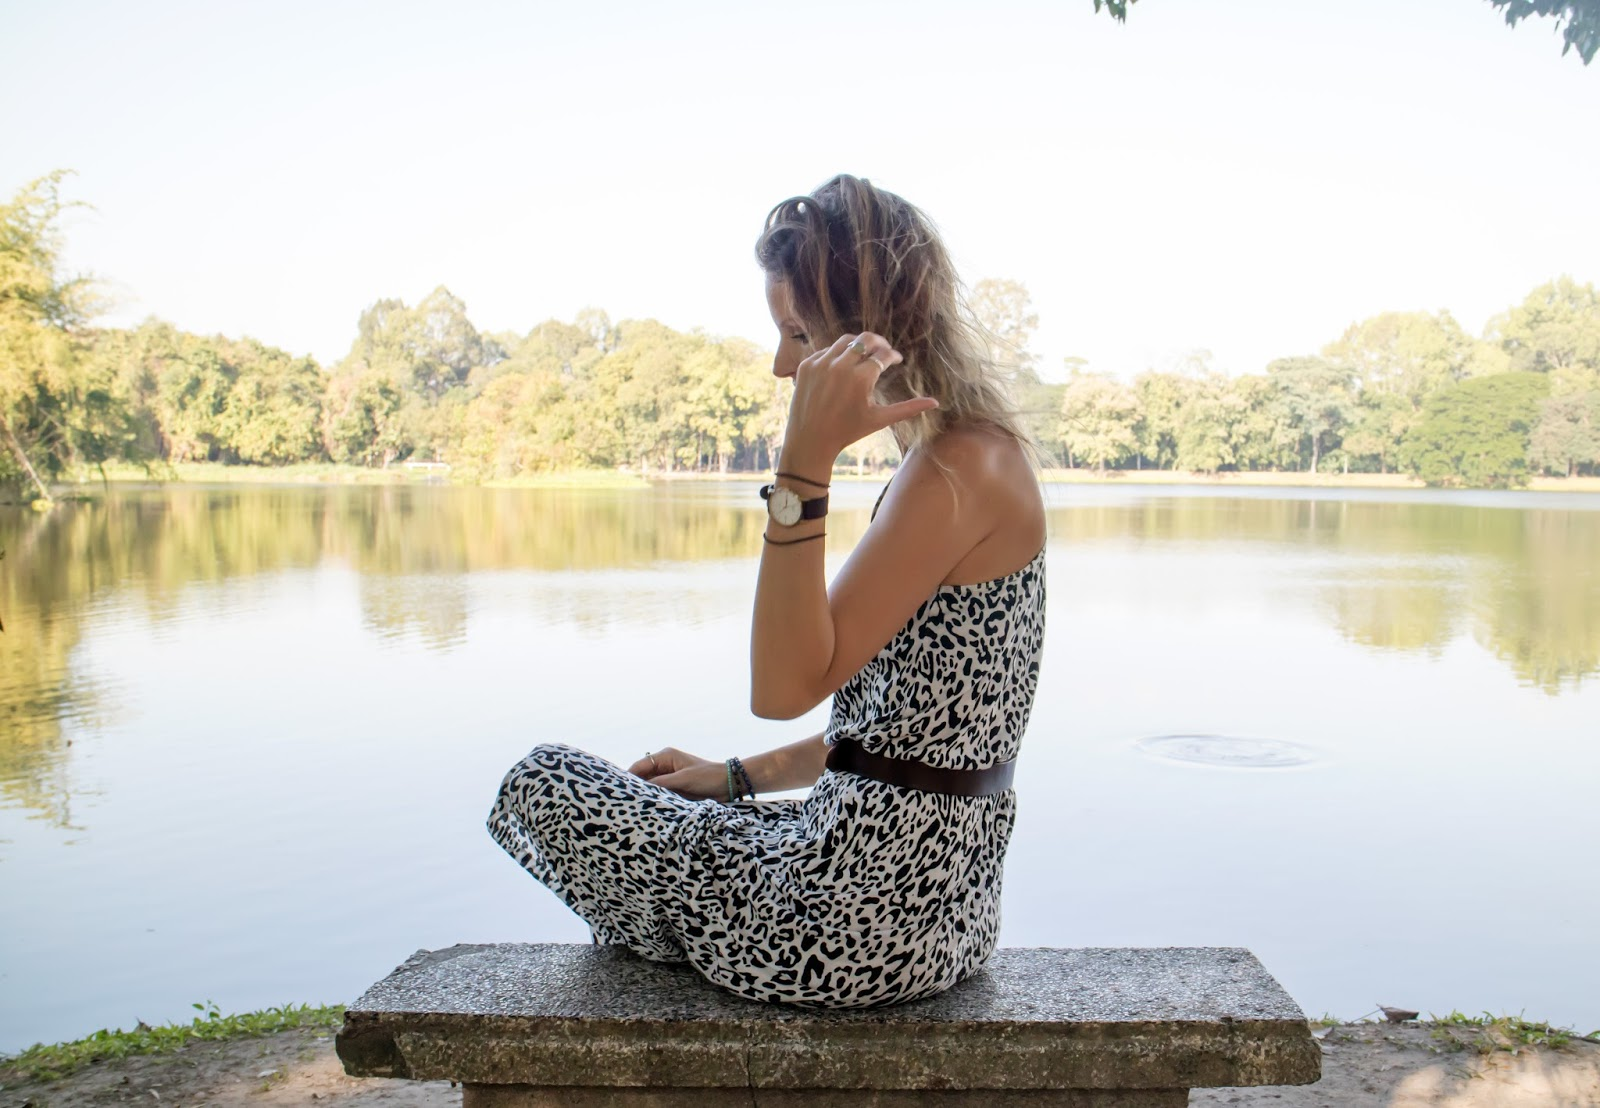 fashion and travel blogger, alison hutchinson, wearing a black and white leopard print maxi dress while on the grounds at Chiang Mai University